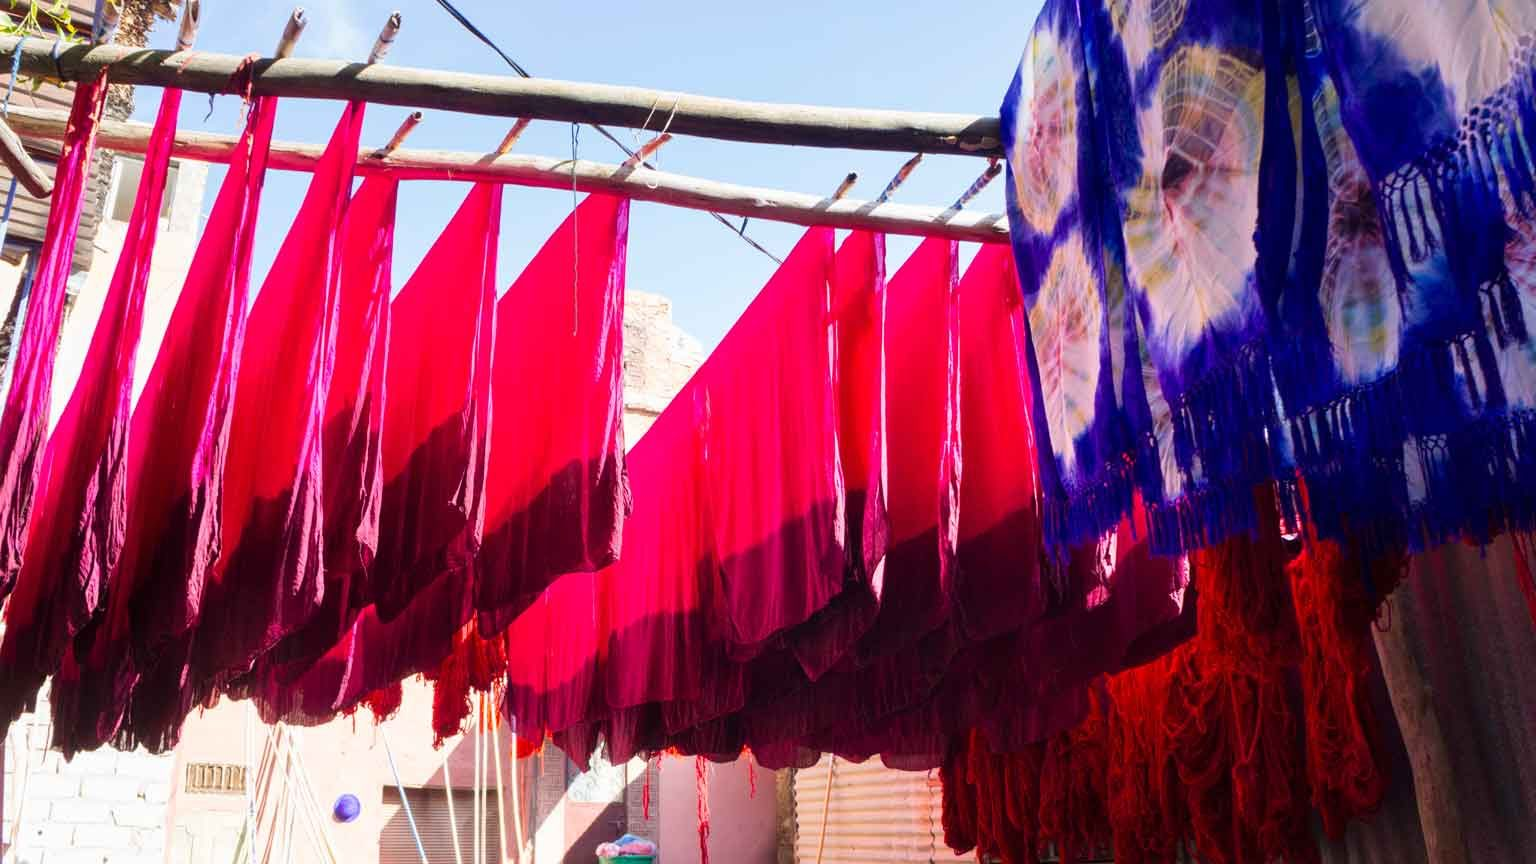 Dyed textiles hung out to dry